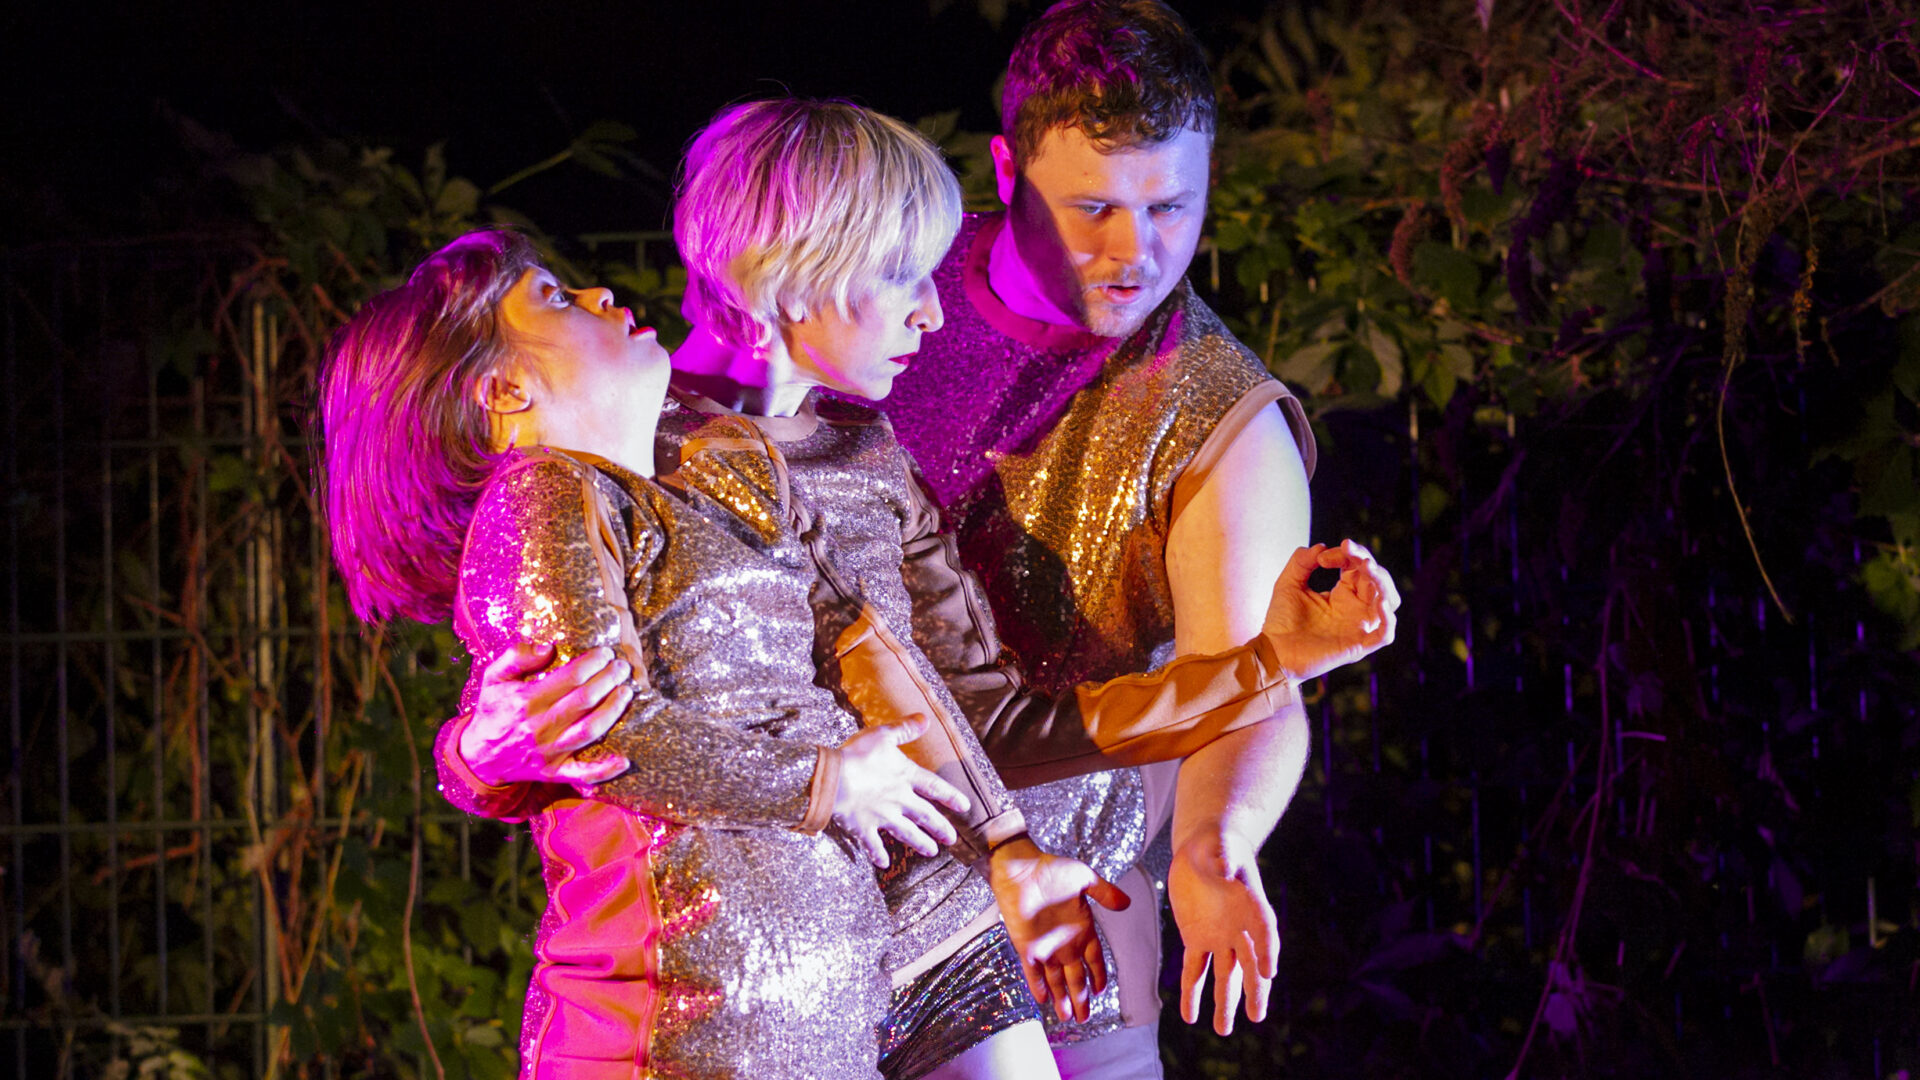 Scene photo of a performance: Three people in glitter costumes dancing on a stage.